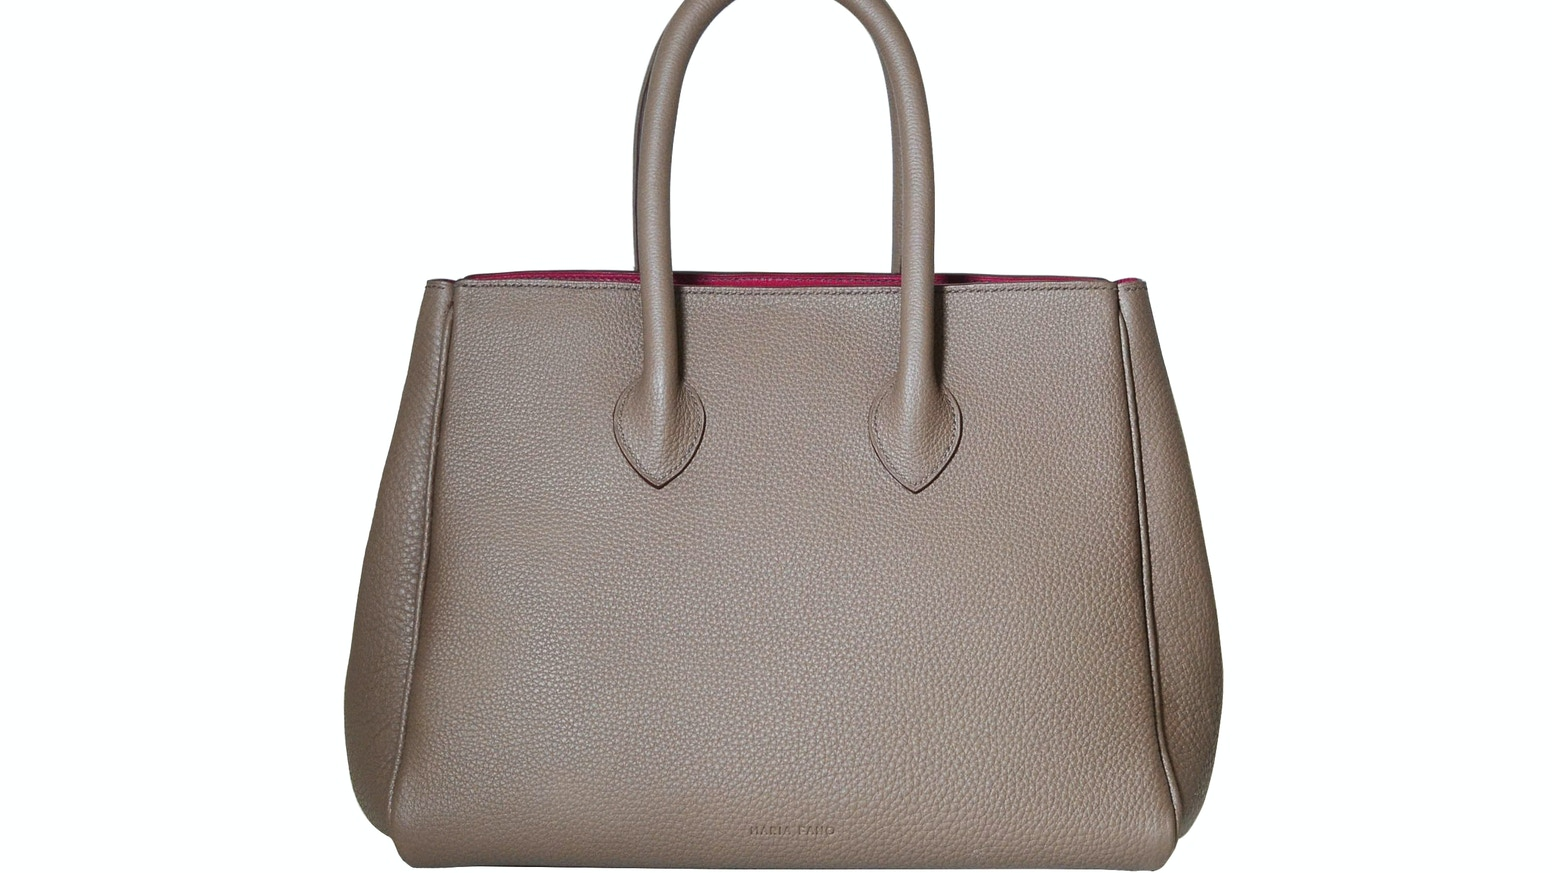 Handbag Handcrafted From Luxury French And German Leather